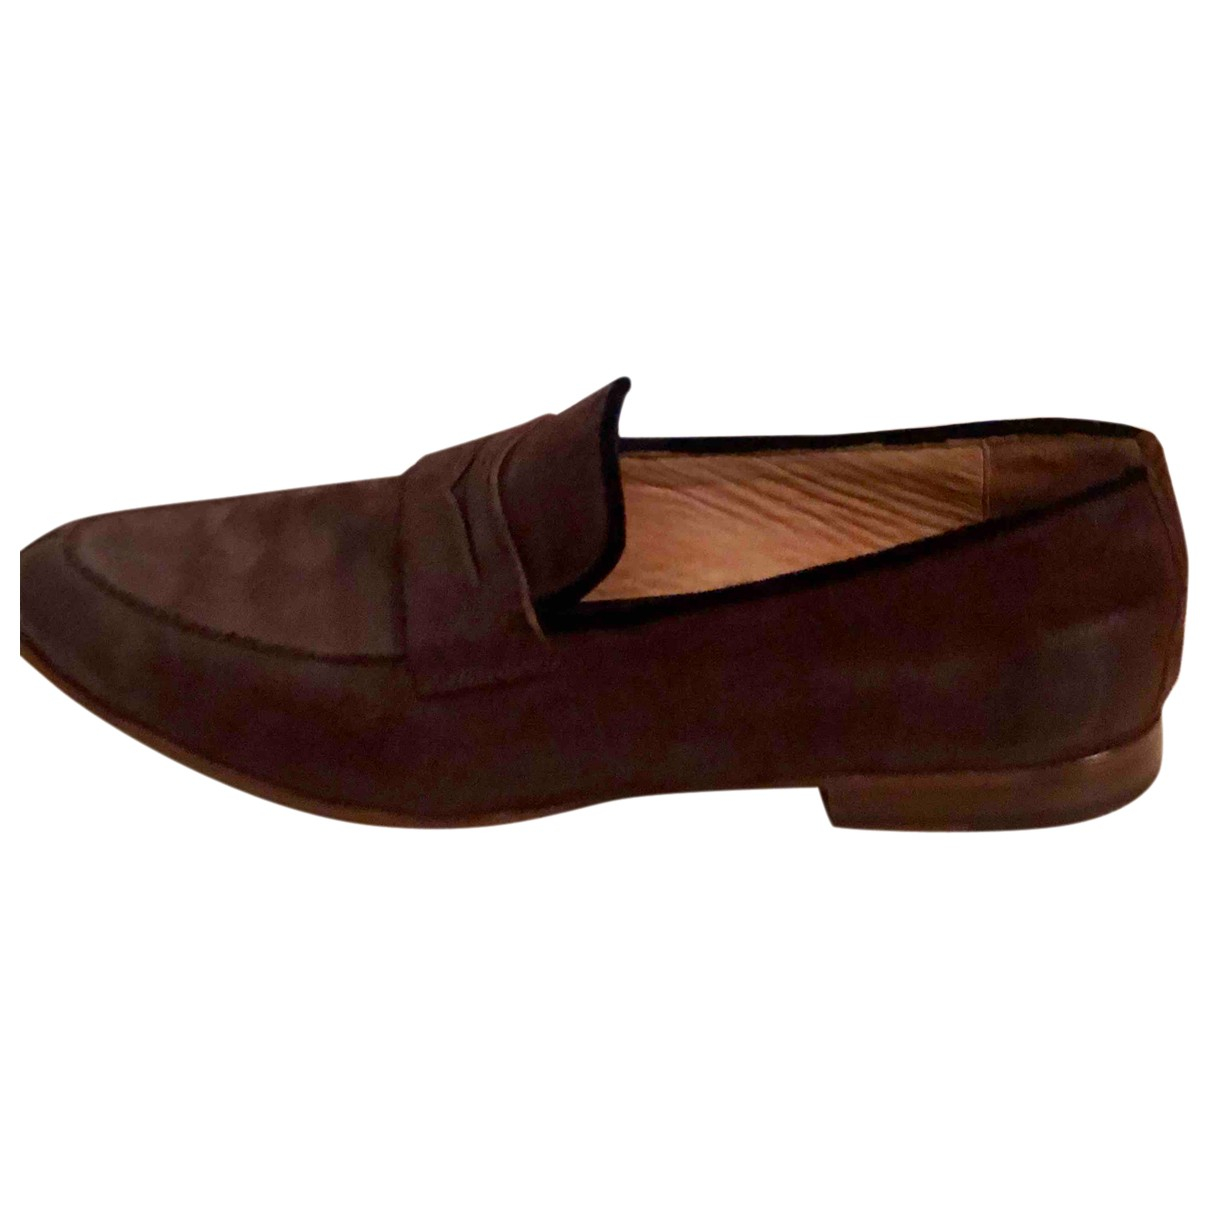 Arfango N Brown Leather Flats for Men 8.5 US